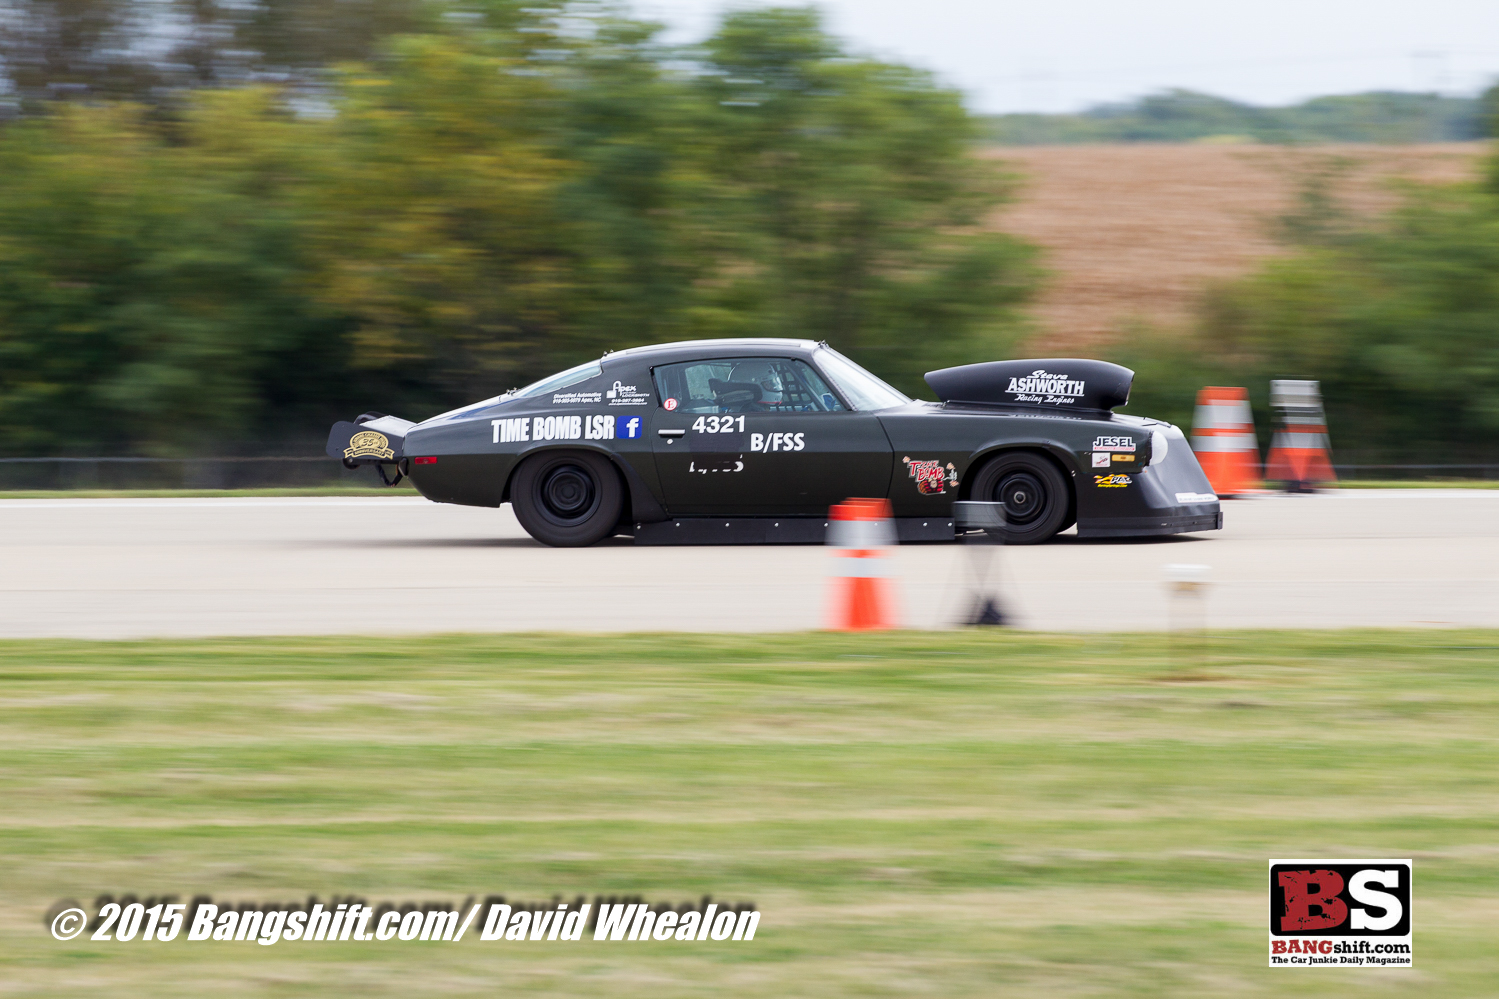 Land Speed Action Photos: More High Speed Images From The Ohio Mile September Meet